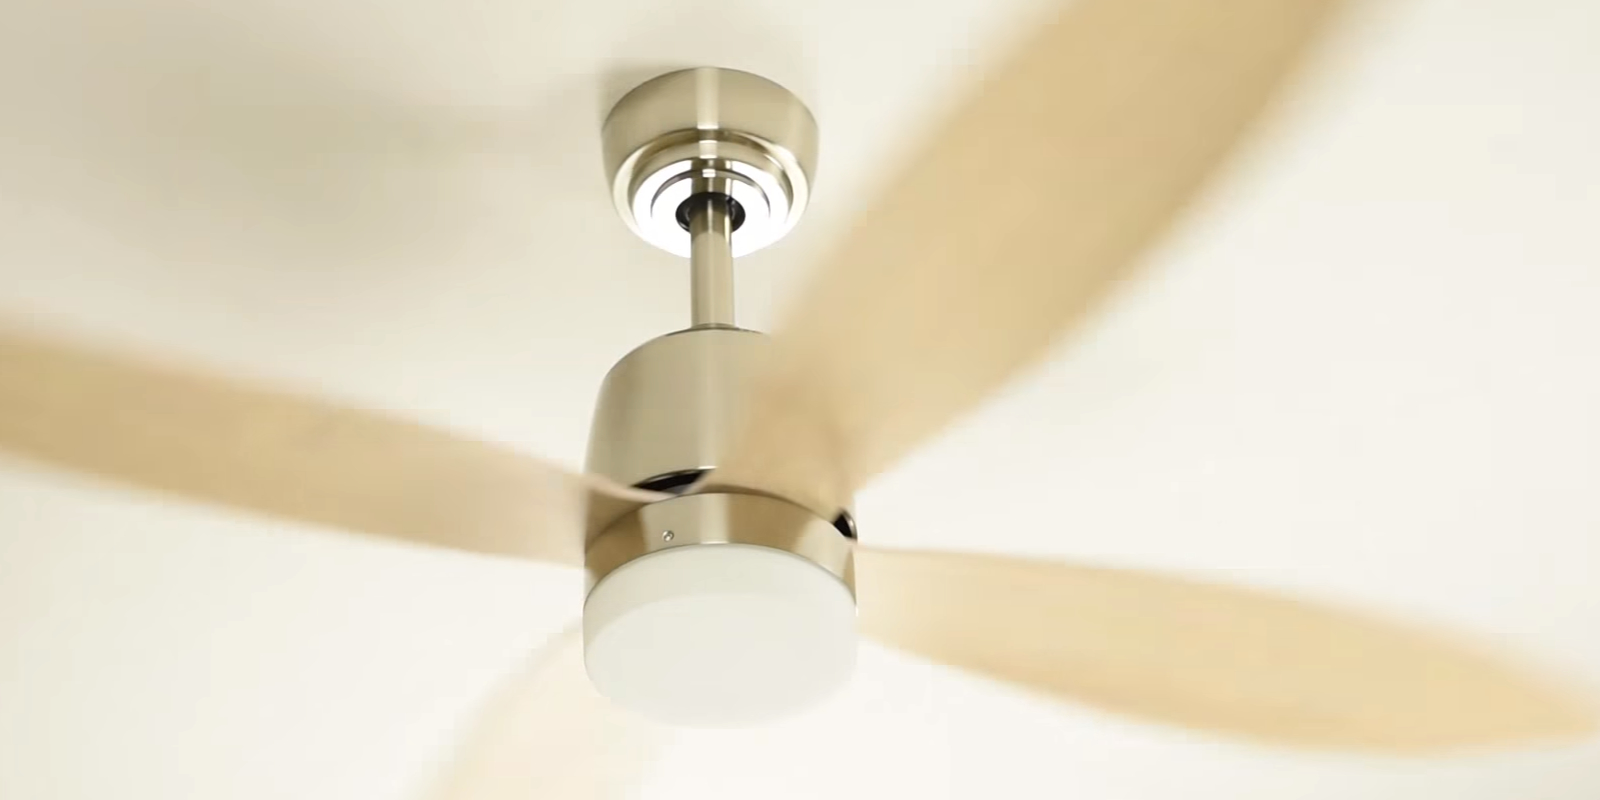 AireRyder Stratus ceiling fan